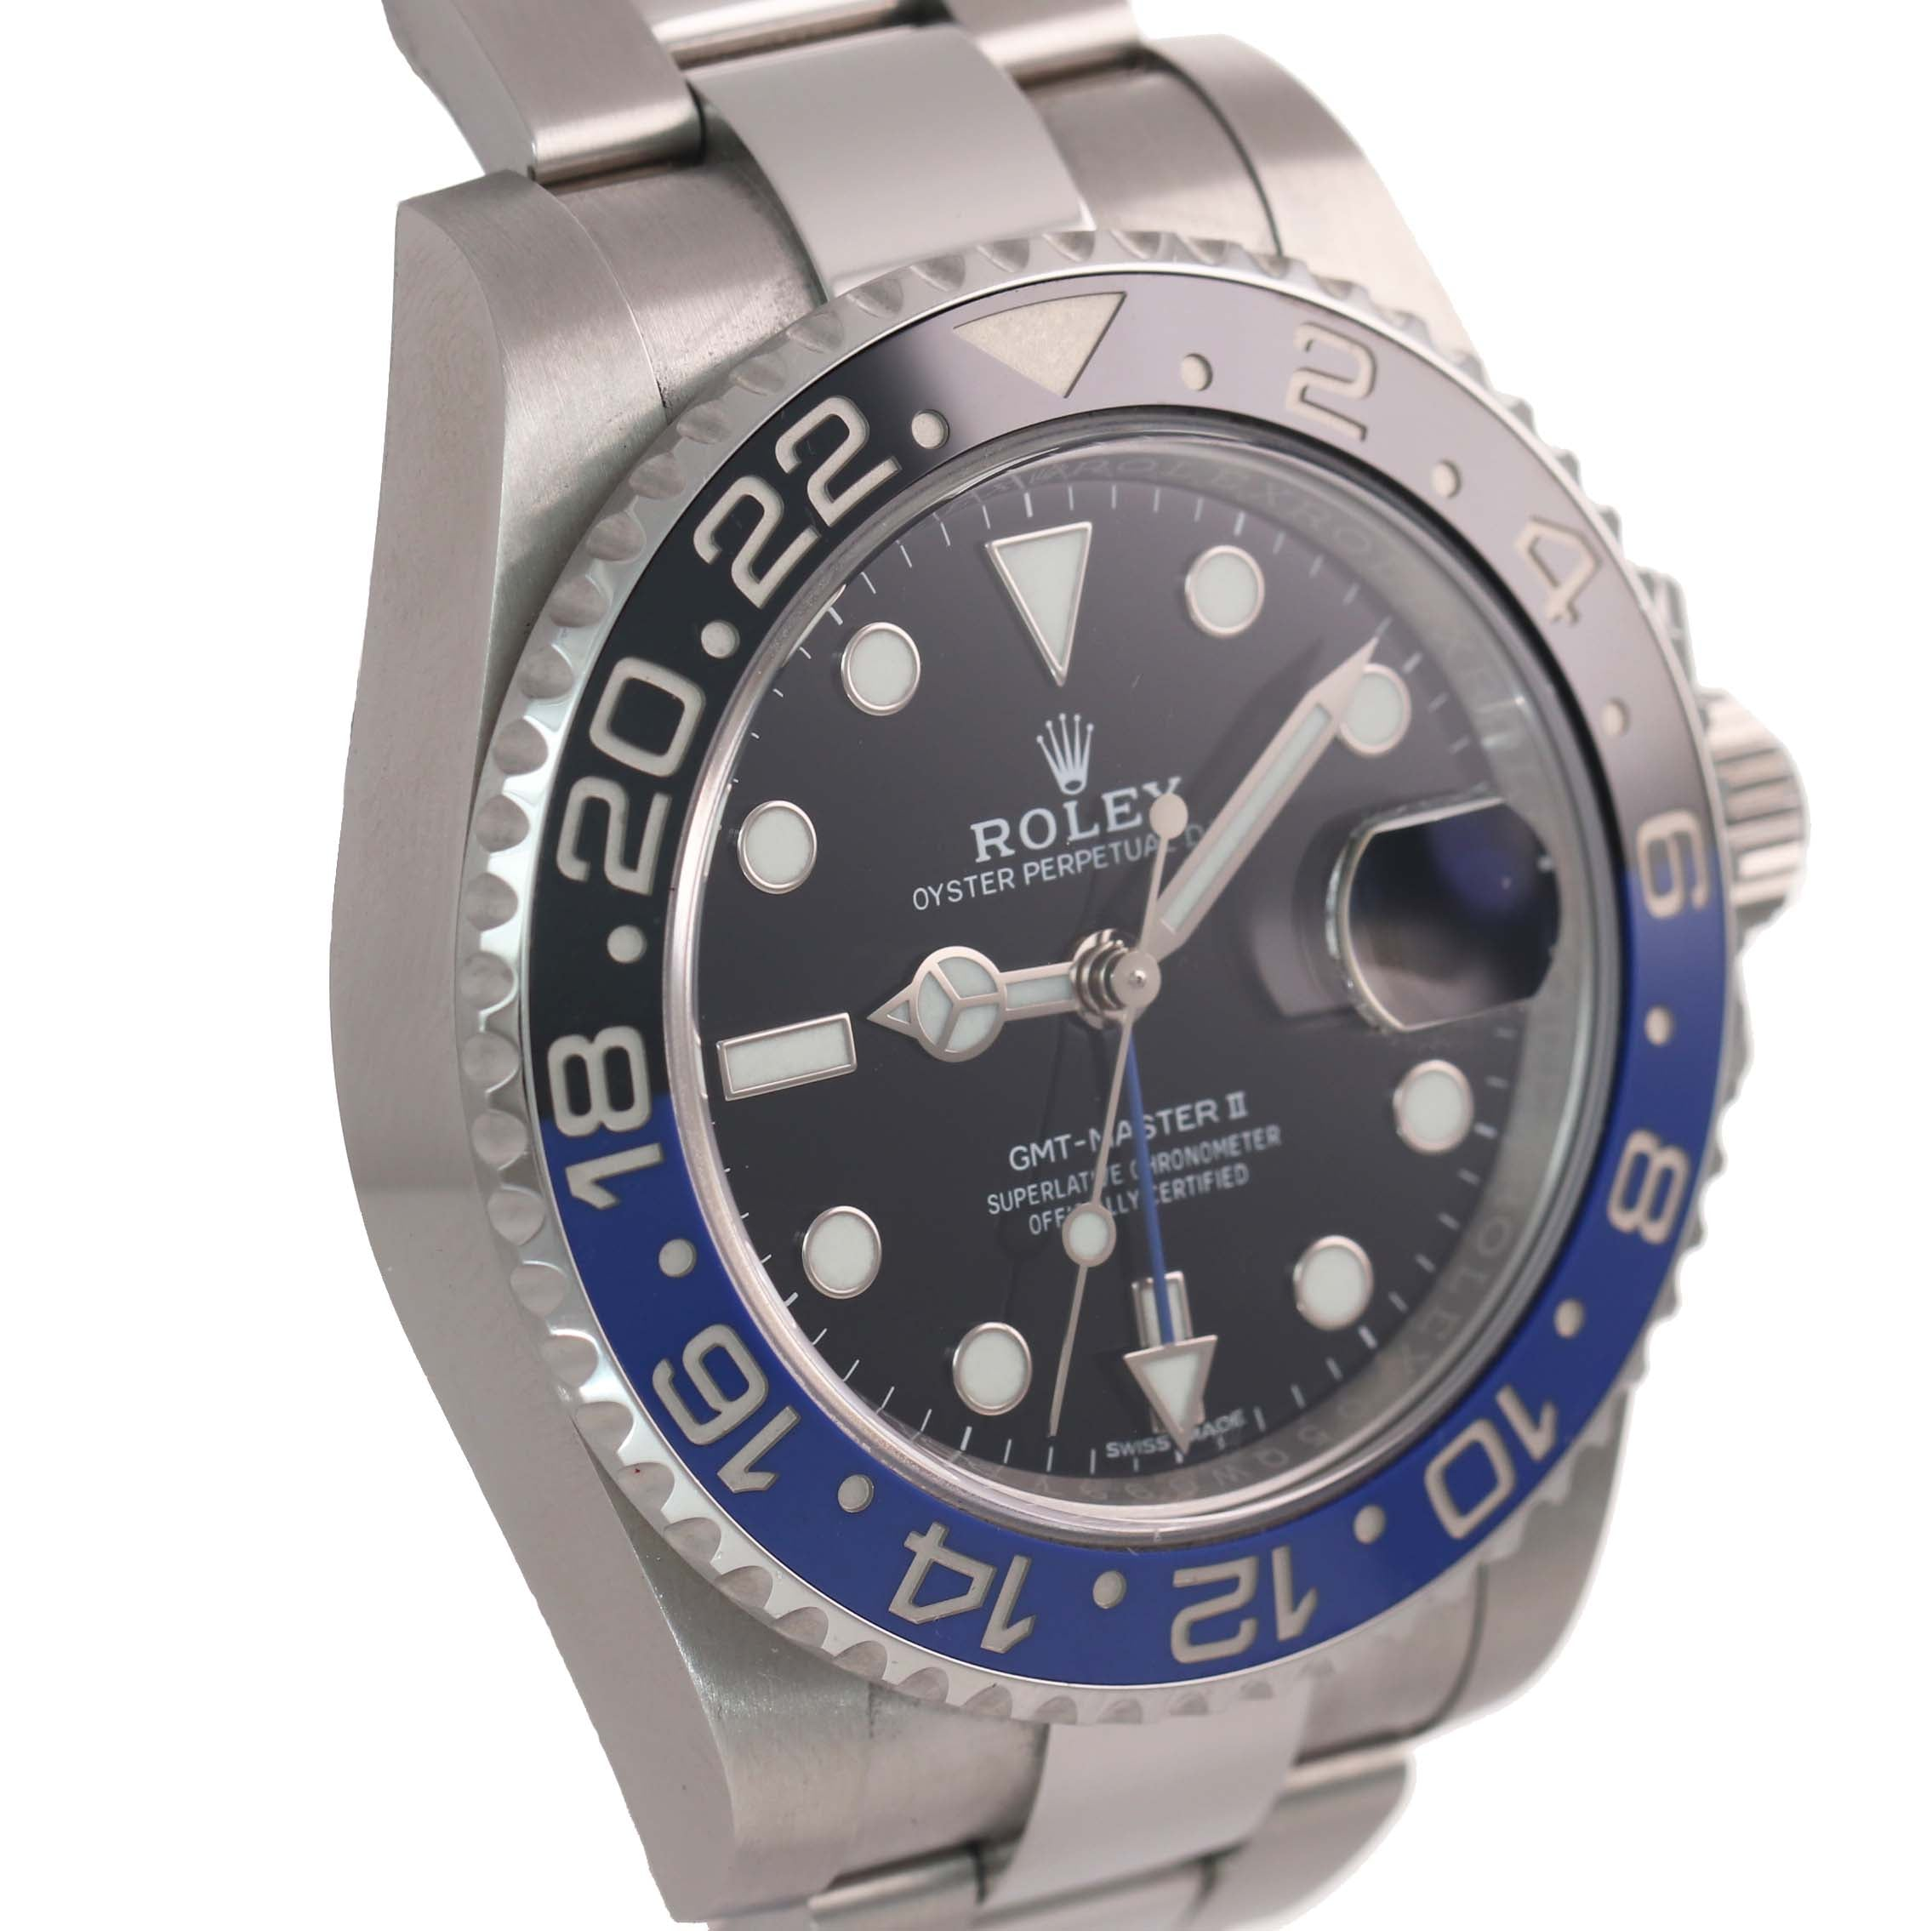 MINT 2017 PAPERS Rolex GMT Master Blue 116710 BLNR Ceramic Batman Watch Box